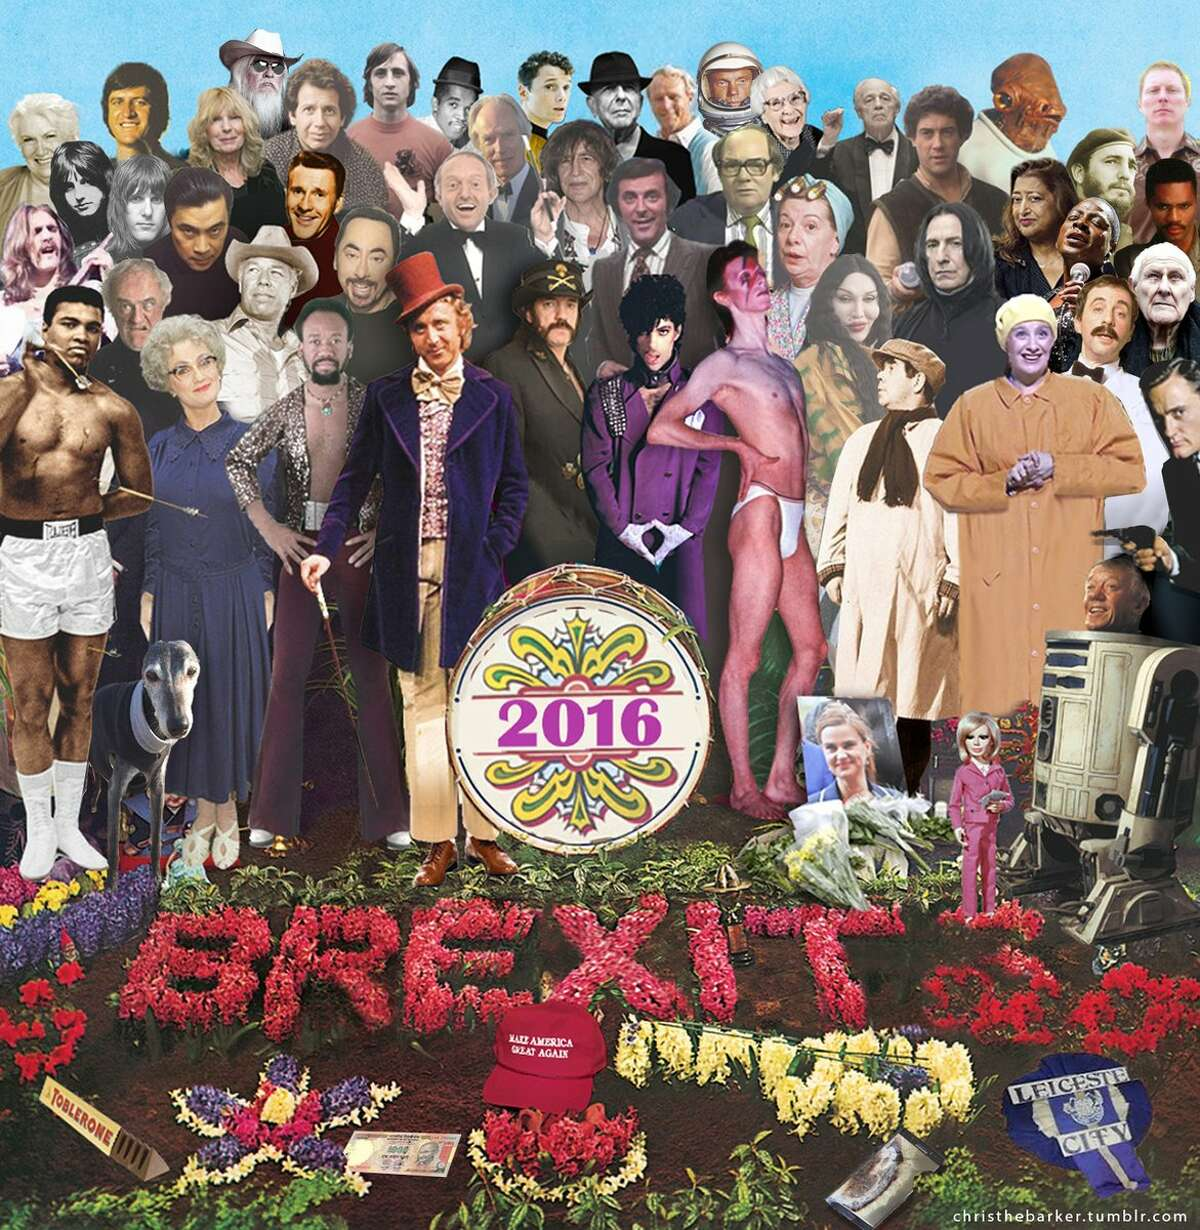 PHOTOS: The musical celebs we've lost in 2016 British art director Chris Barker recreated the iconic Beatles